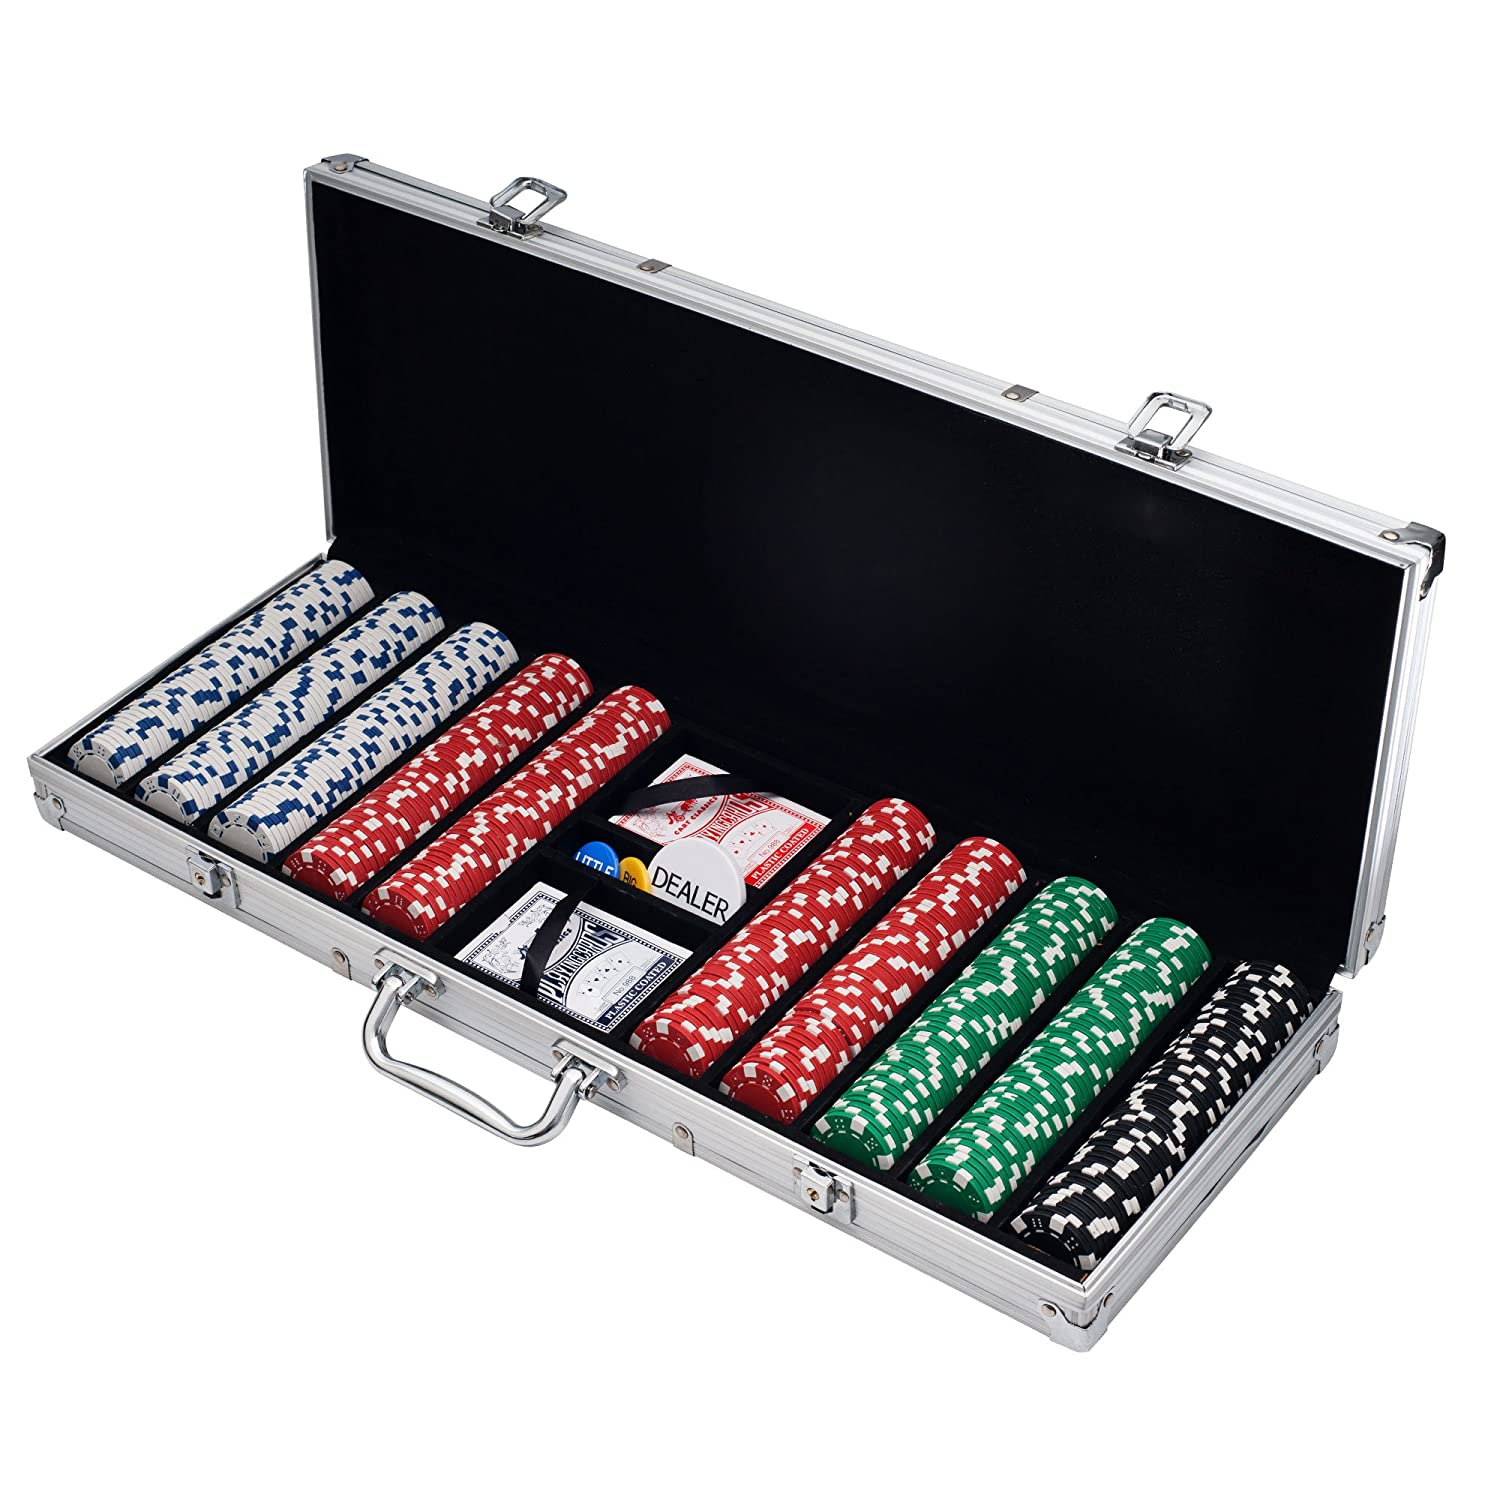 Trademark Poker 500 Dice Style 11.5-Gram Poker Chip Set $28.49 (Was $70)